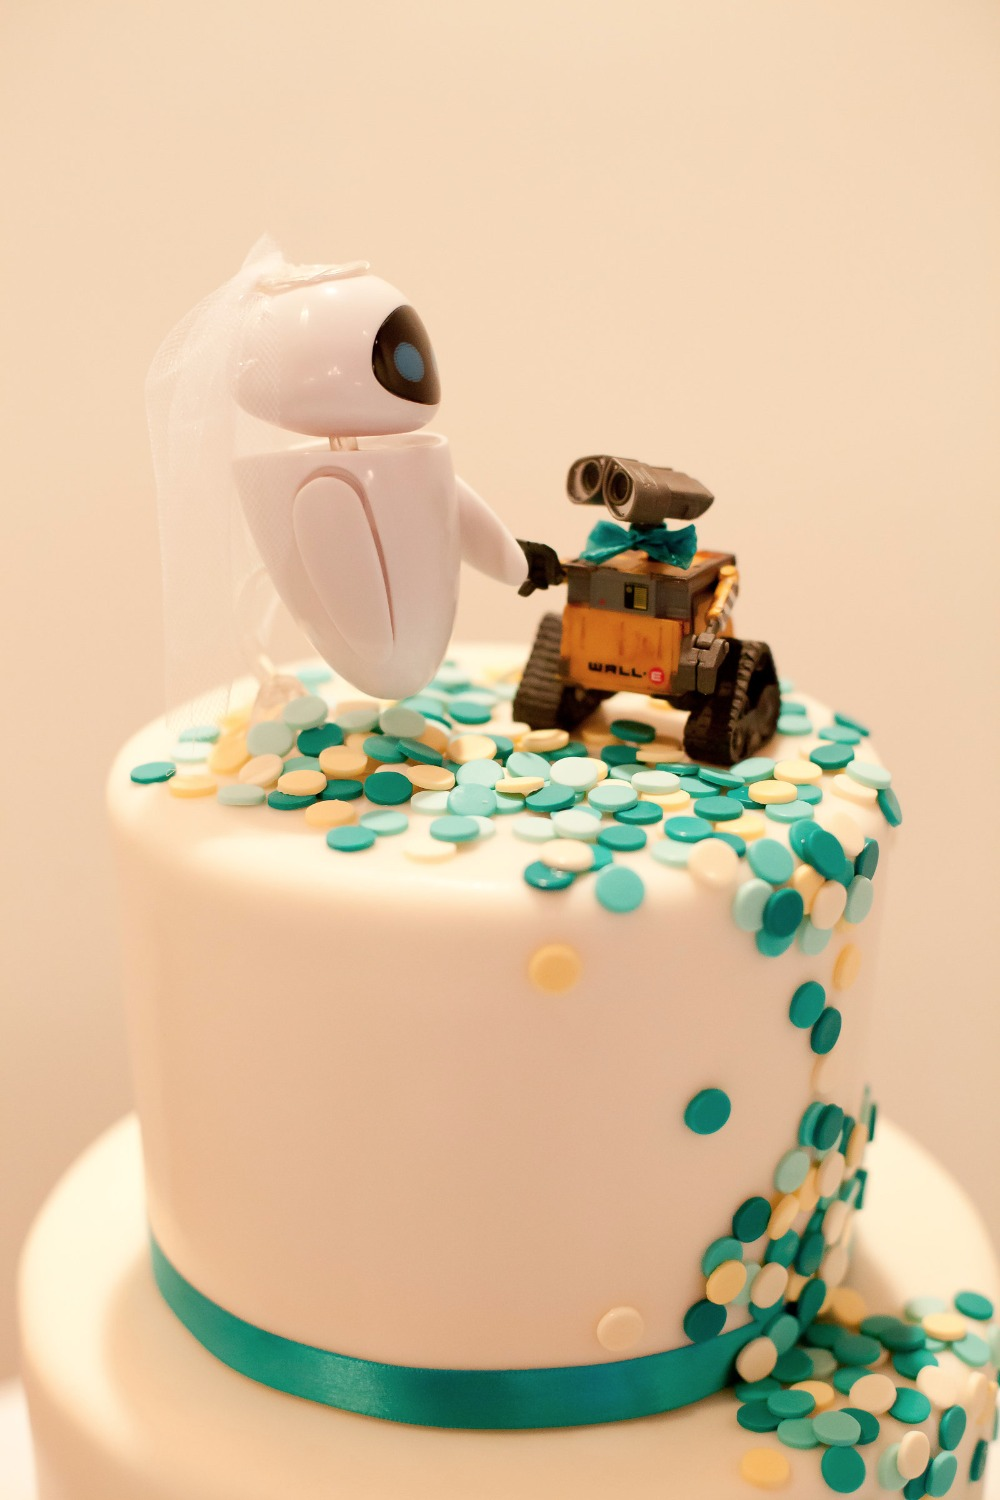 Eva and Wall-E wedding cake topper